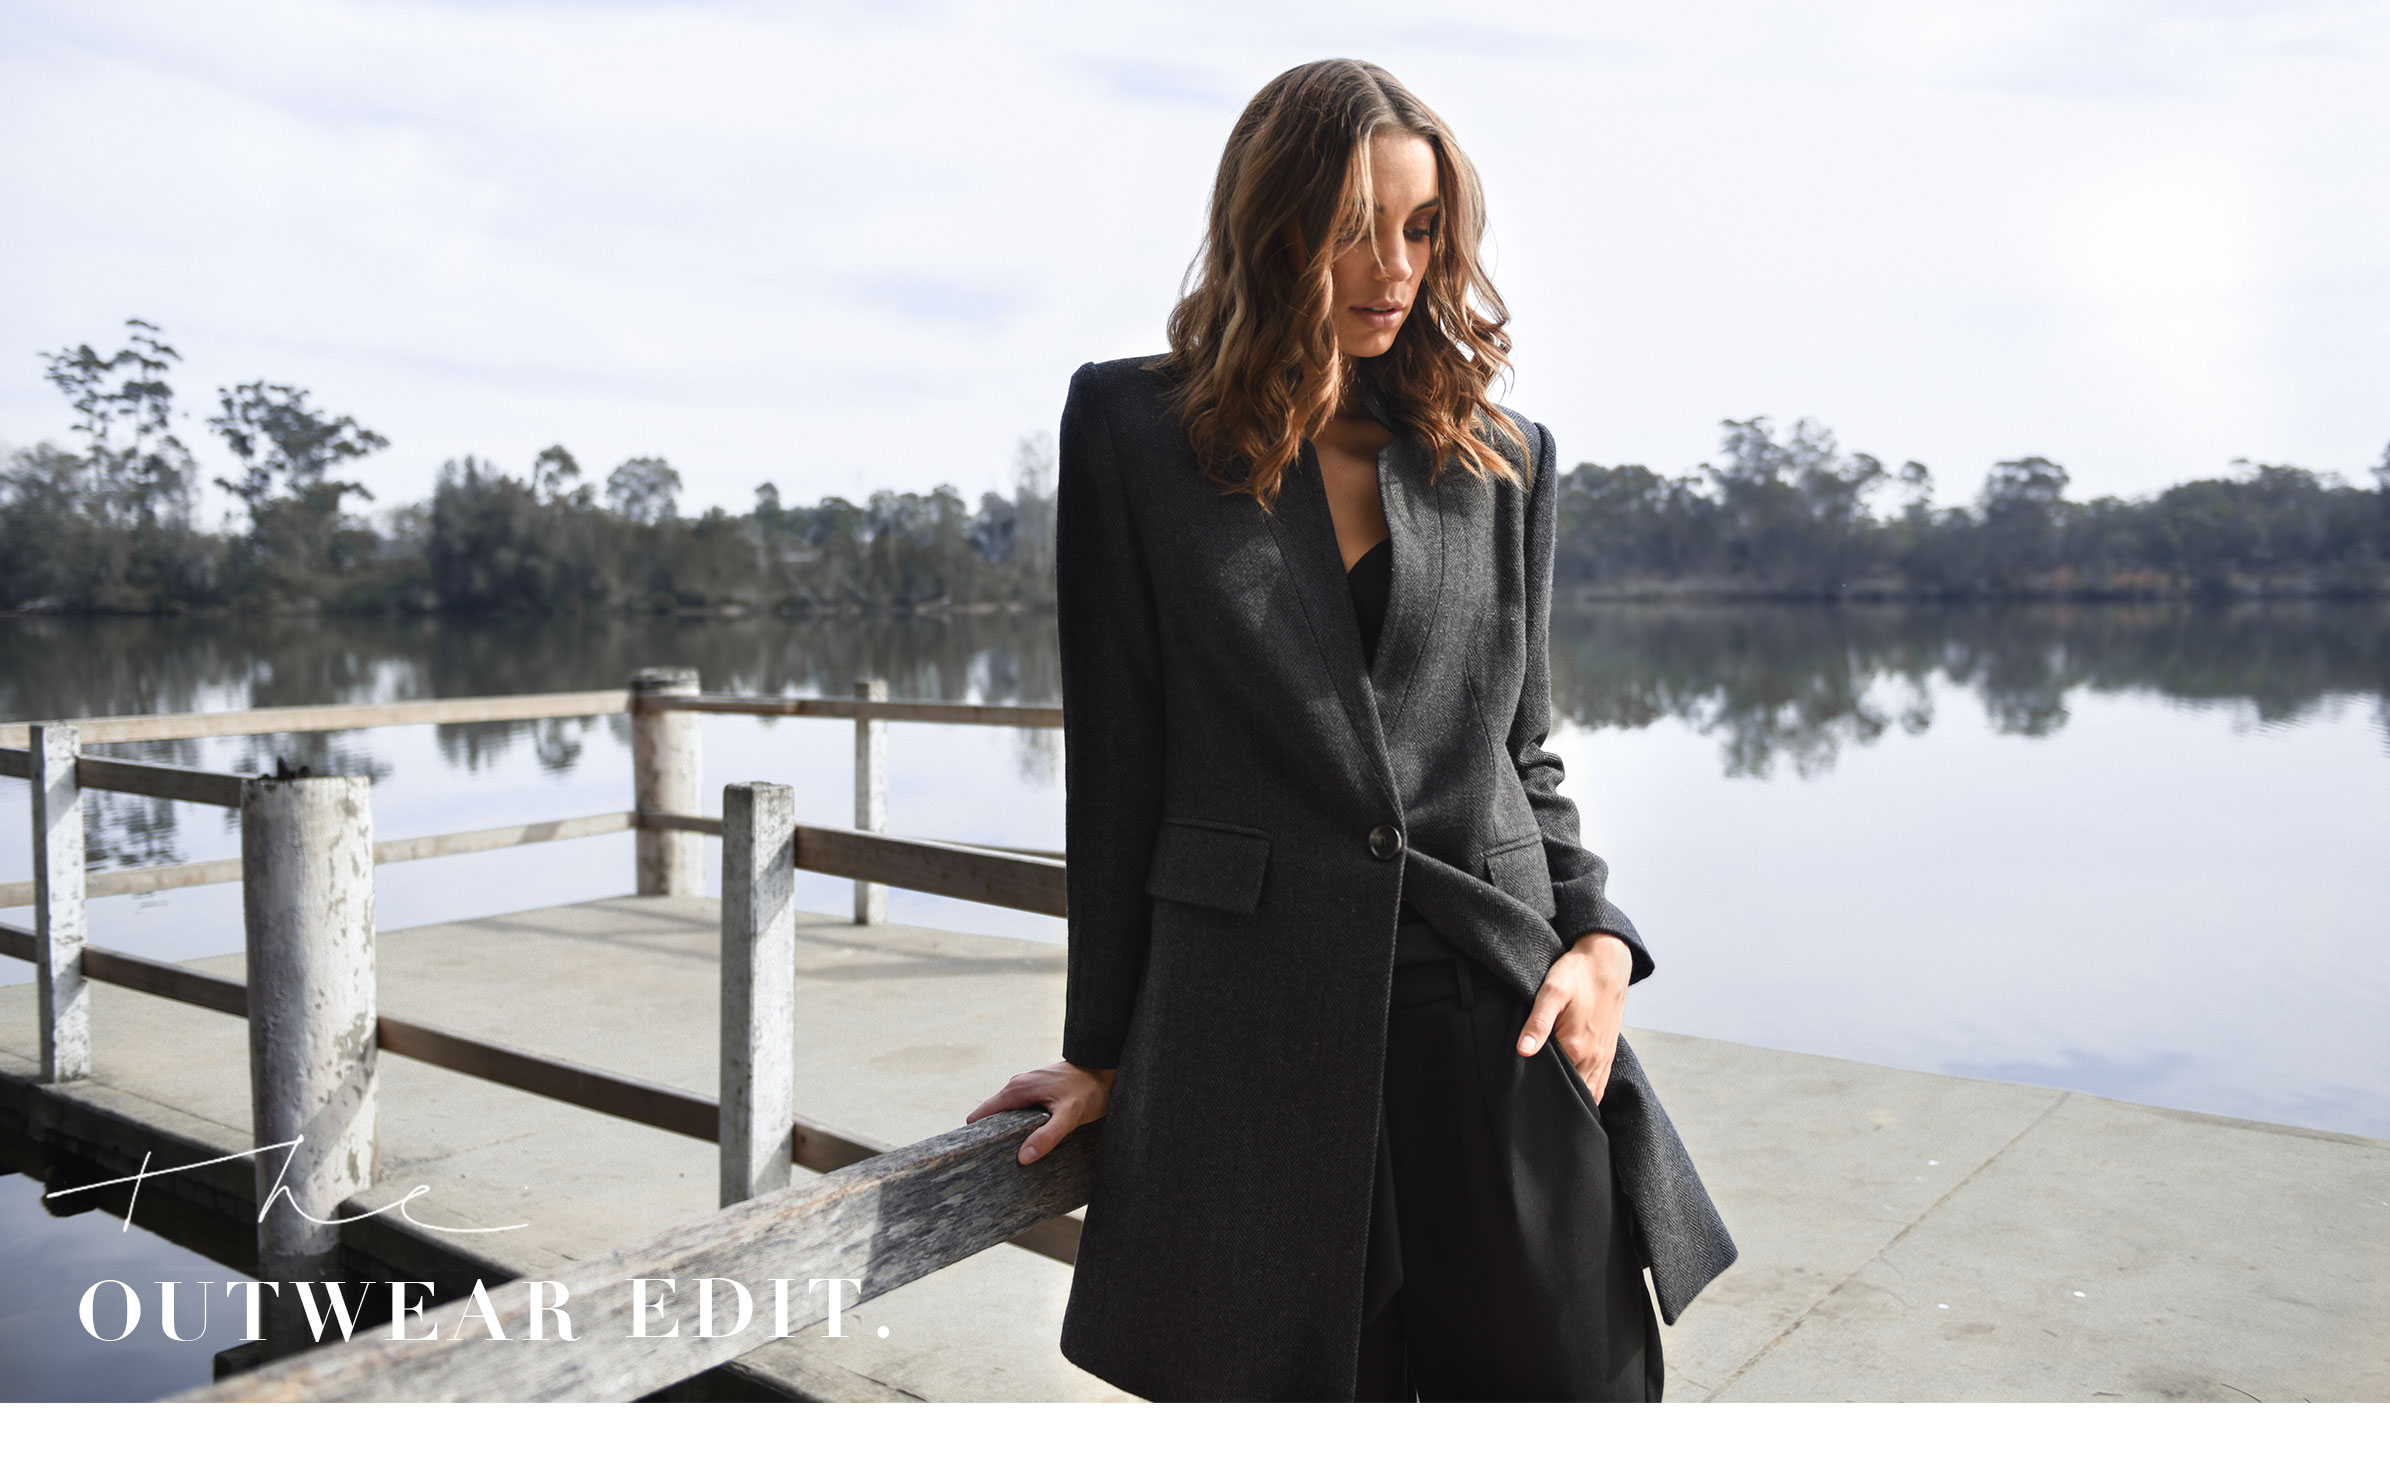 WOMEN'S COAT EDIT. Update your winter outwear with our latest range of coats and jackets